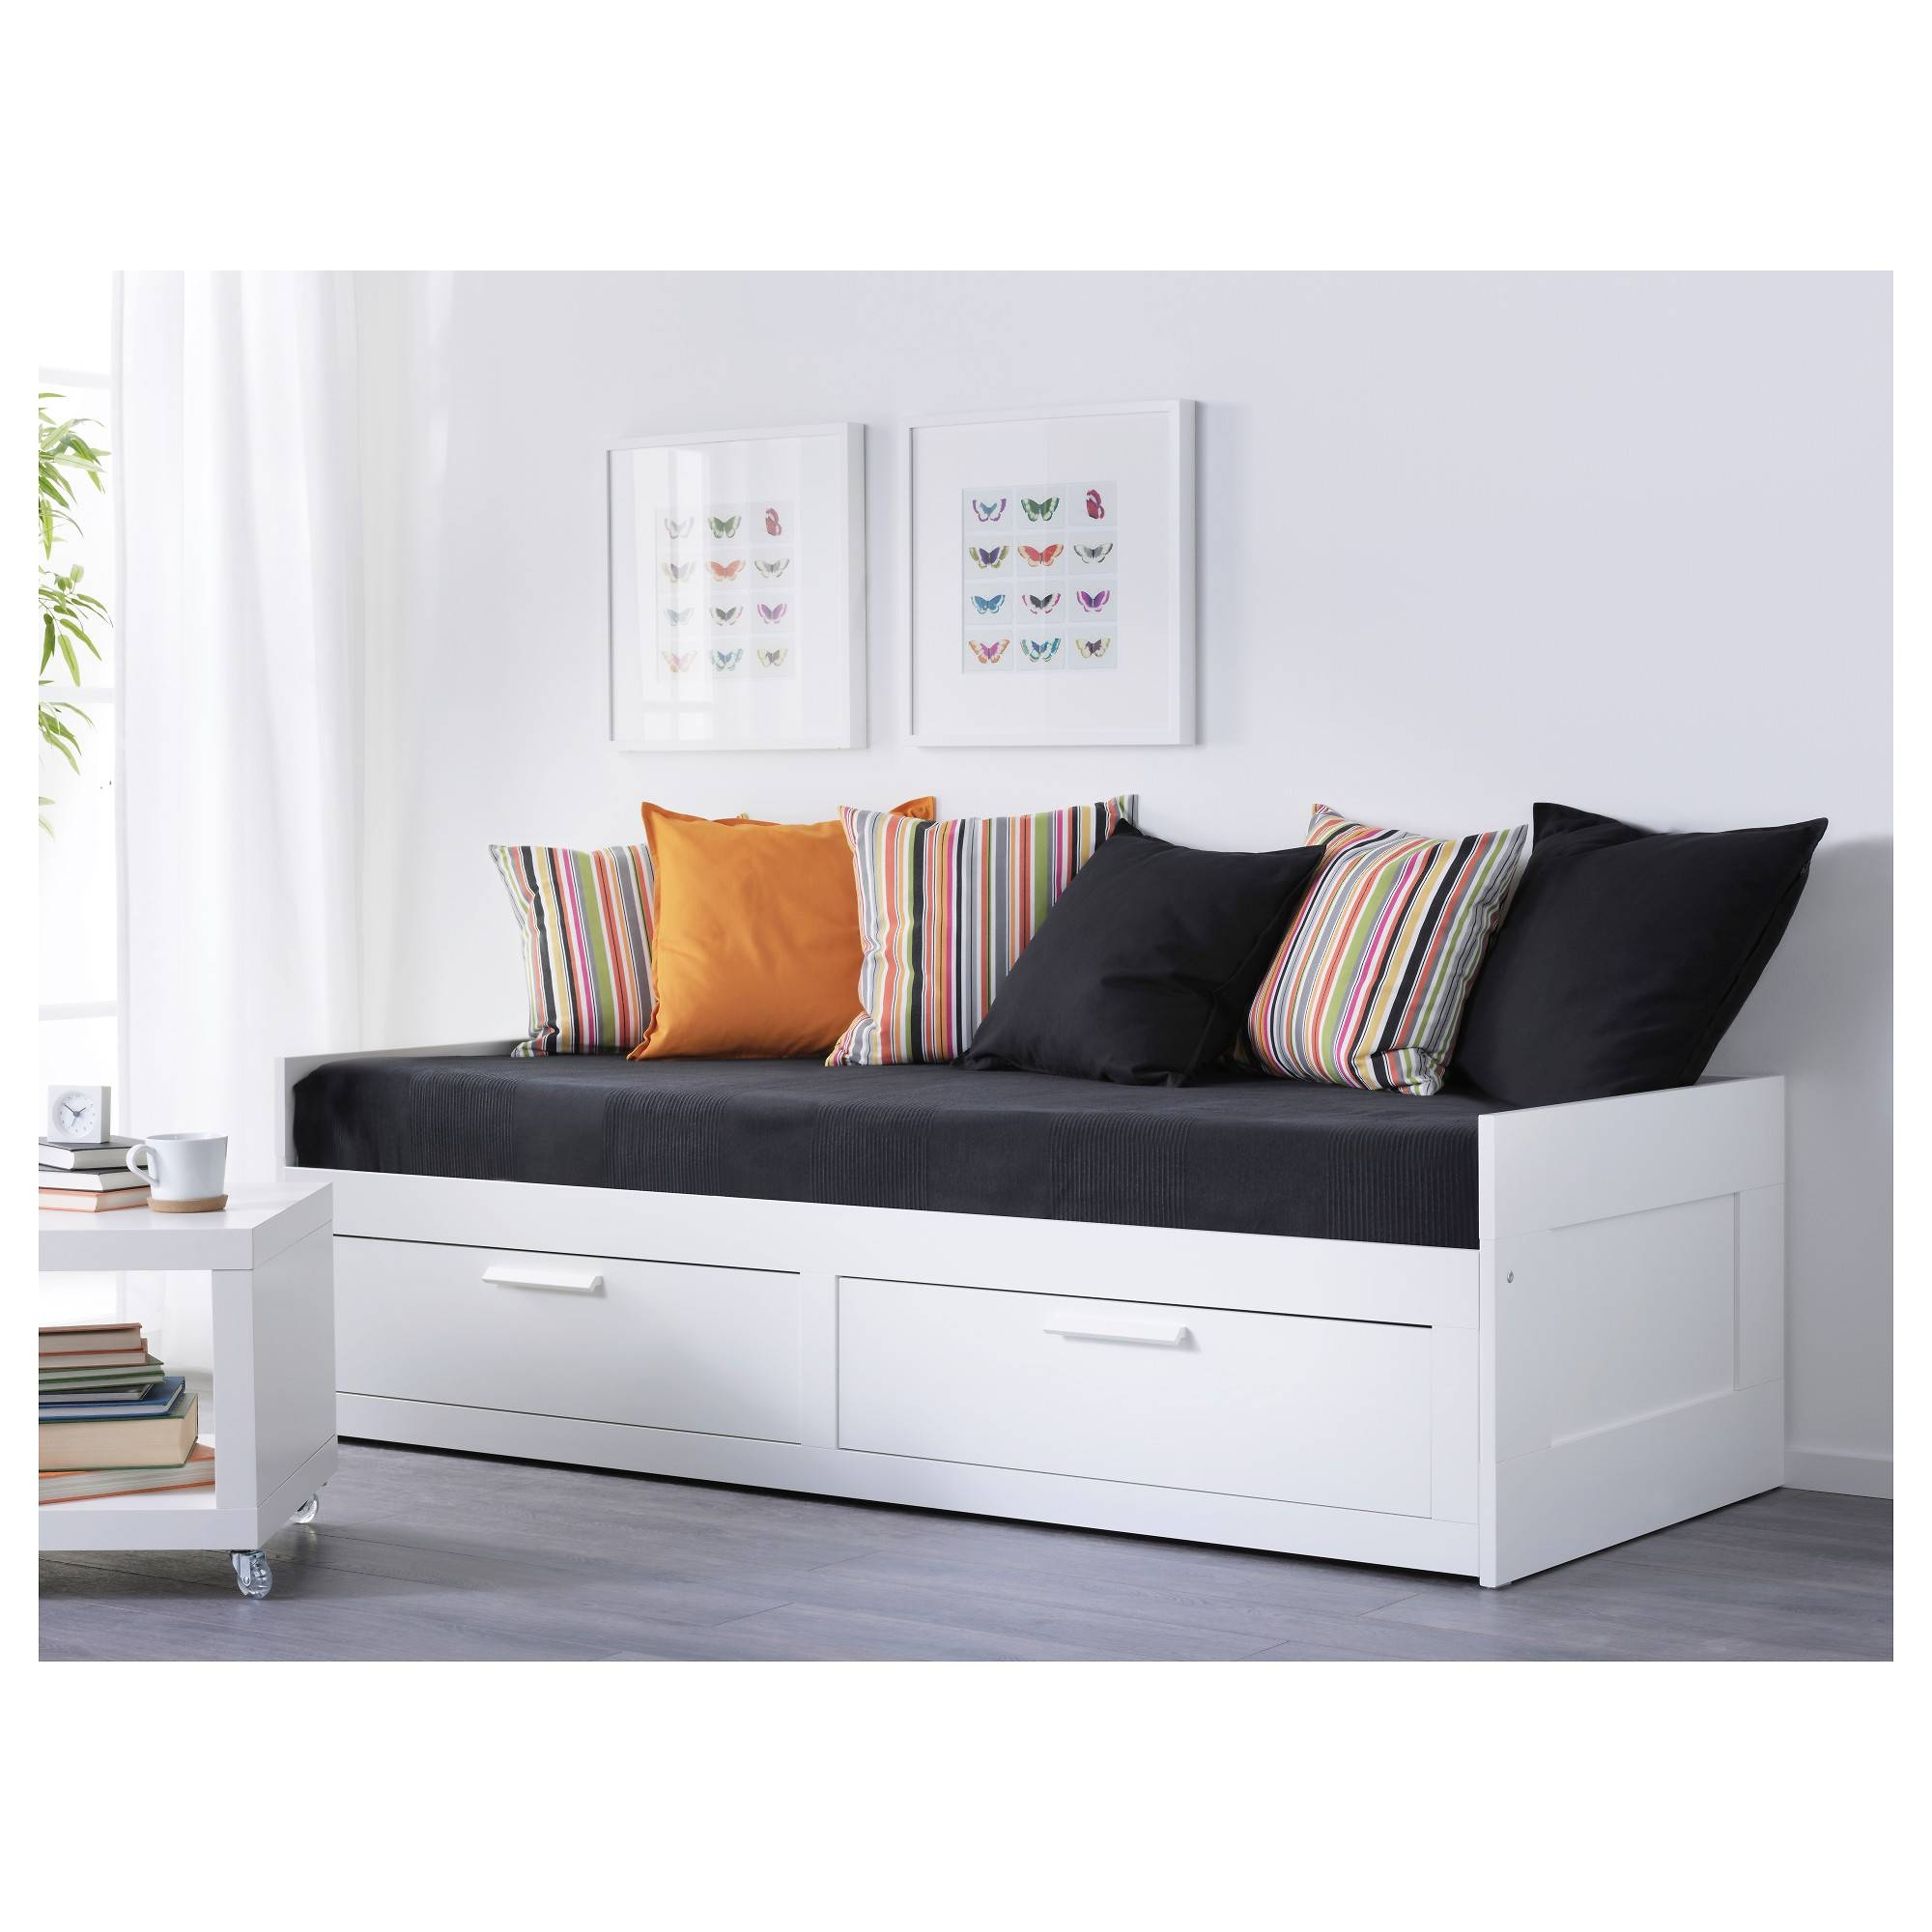 Brimnes Daybed Frame With 2 Drawers - Ikea for Sofa Day Beds (Image 7 of 30)